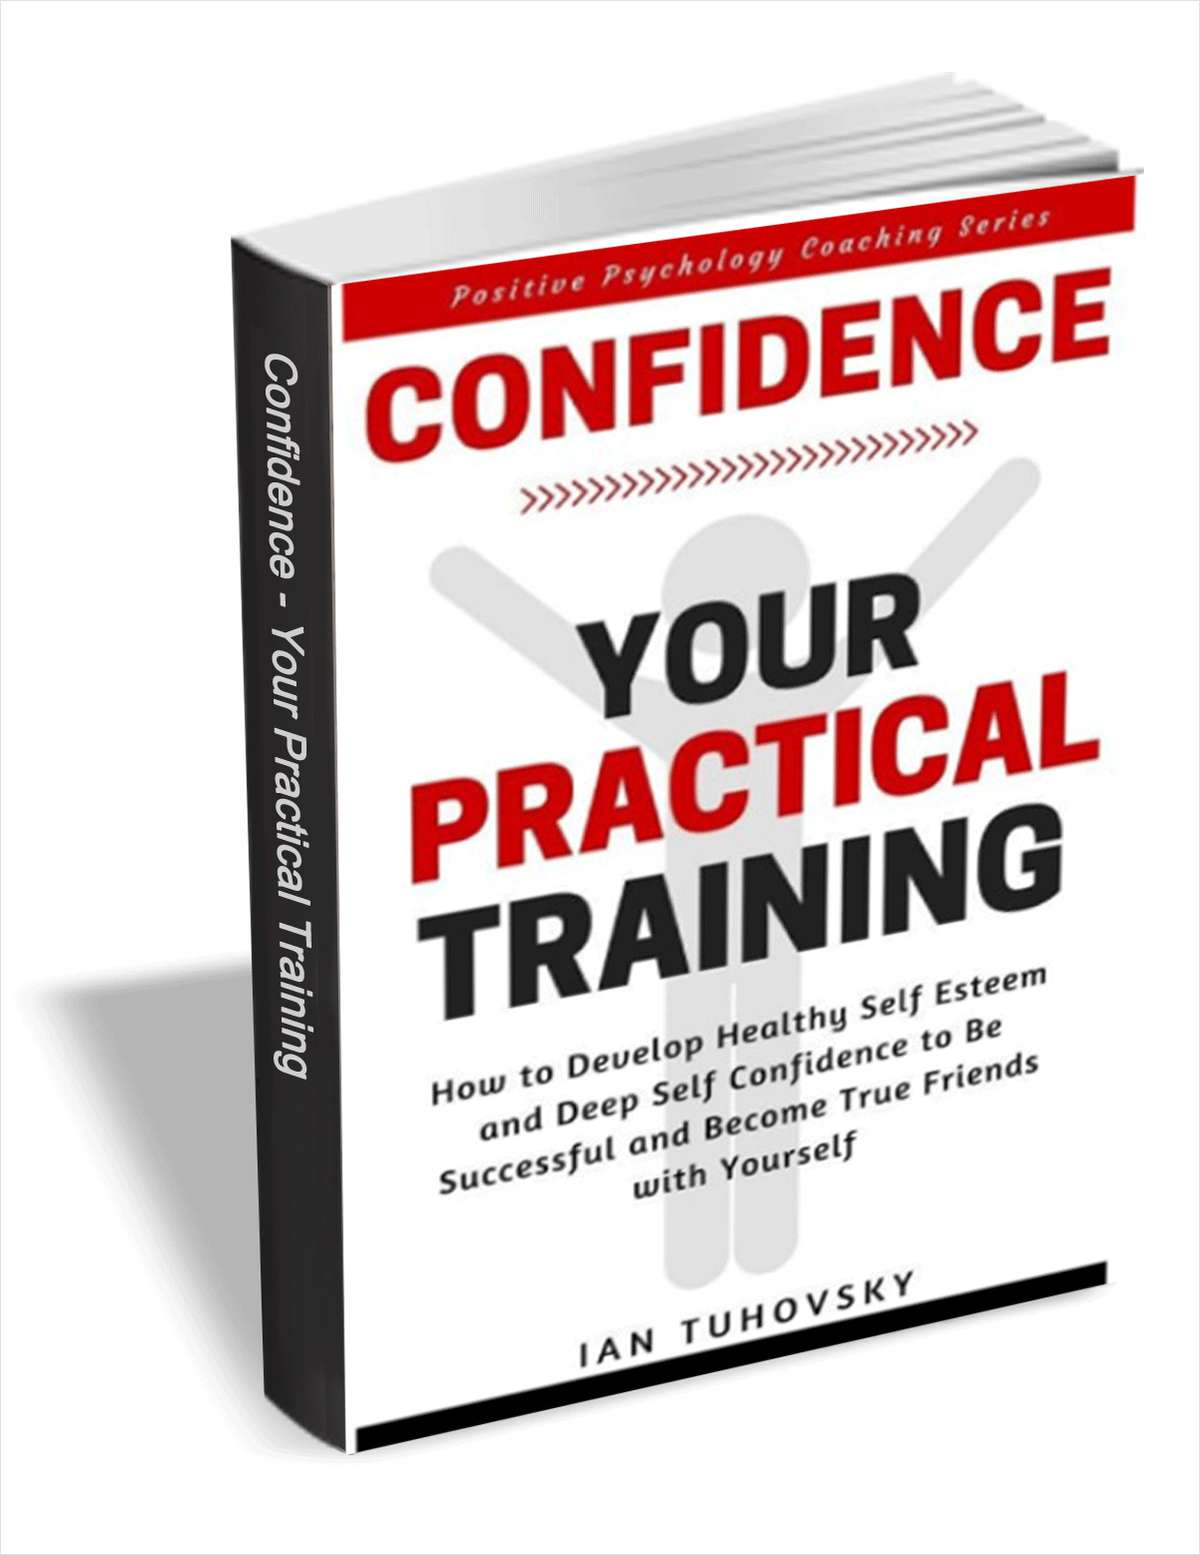 Confidence - Your Practical Training